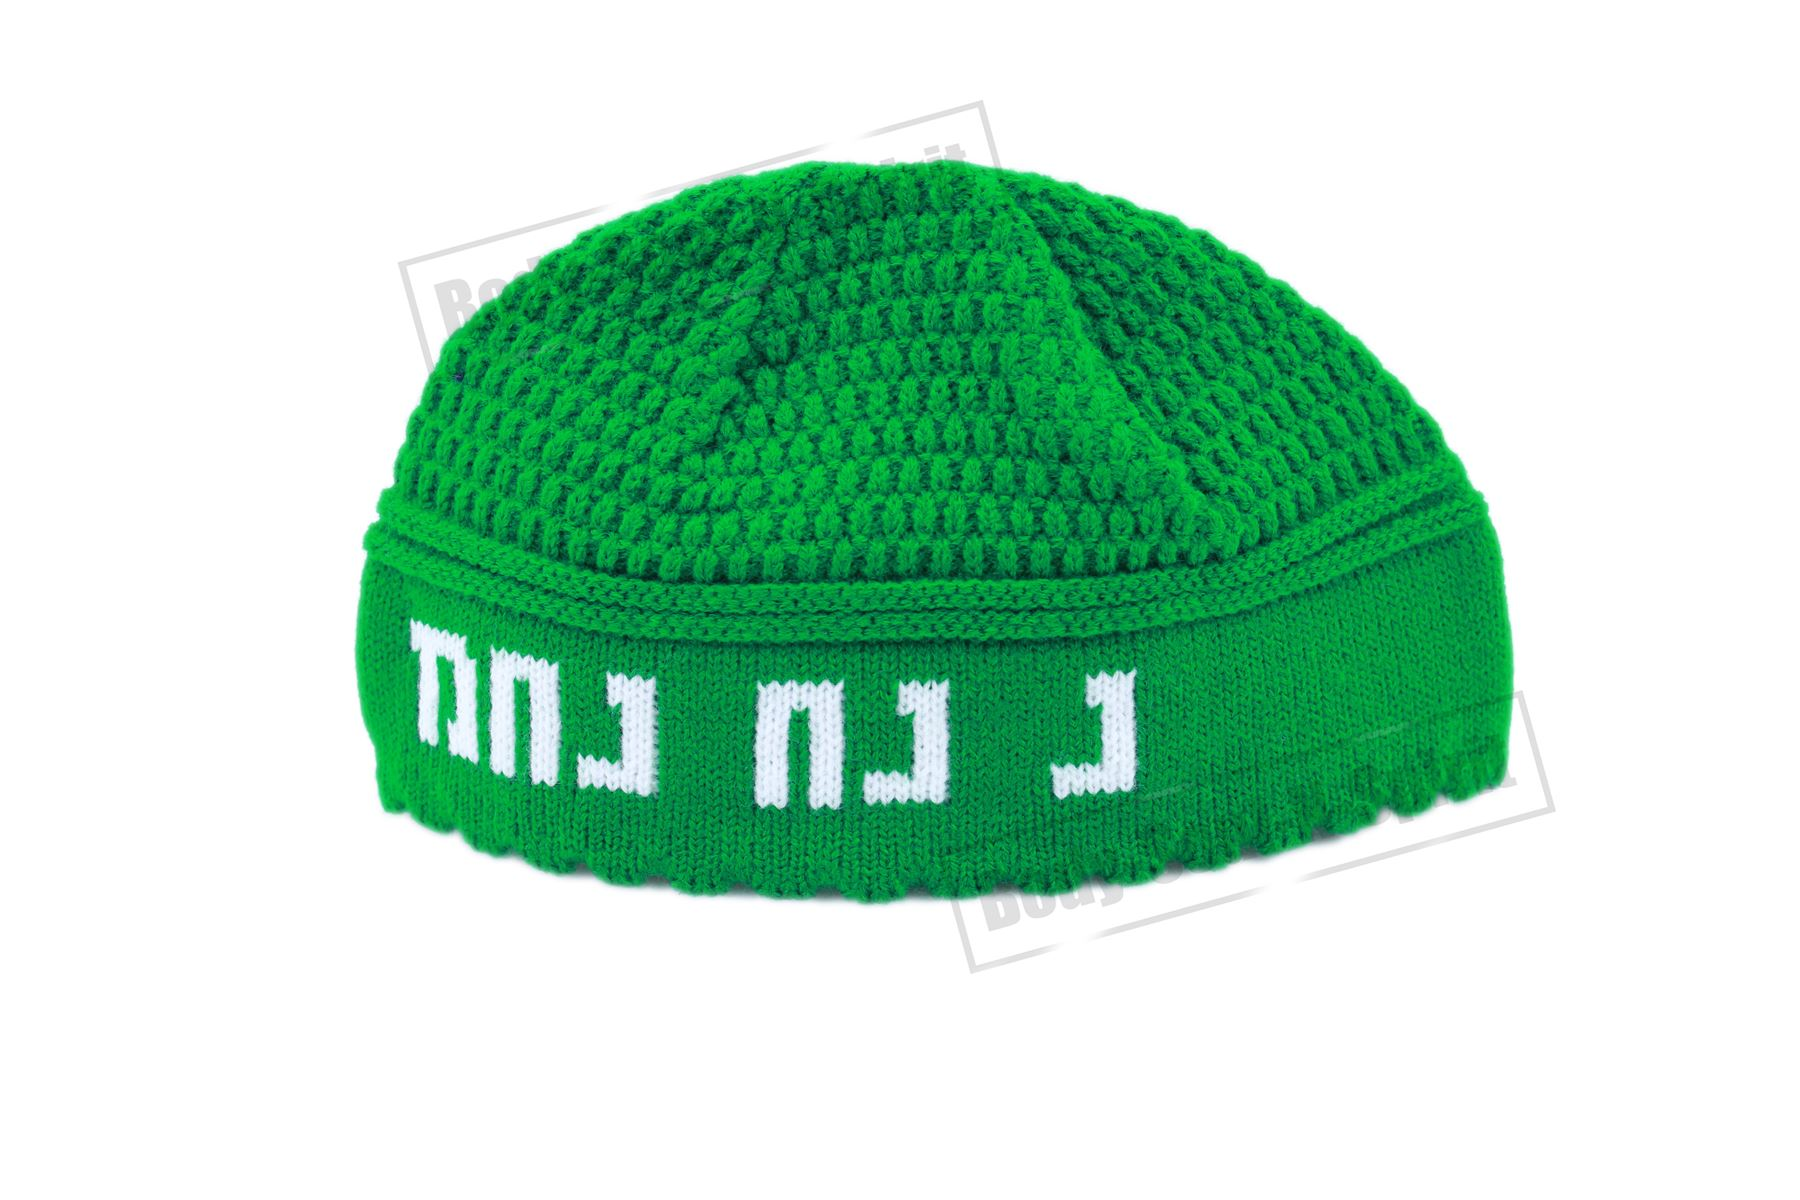 Green Rabbi Na Nachman Knitted Kippah Yarmulke Tribal Jewish Hat ...